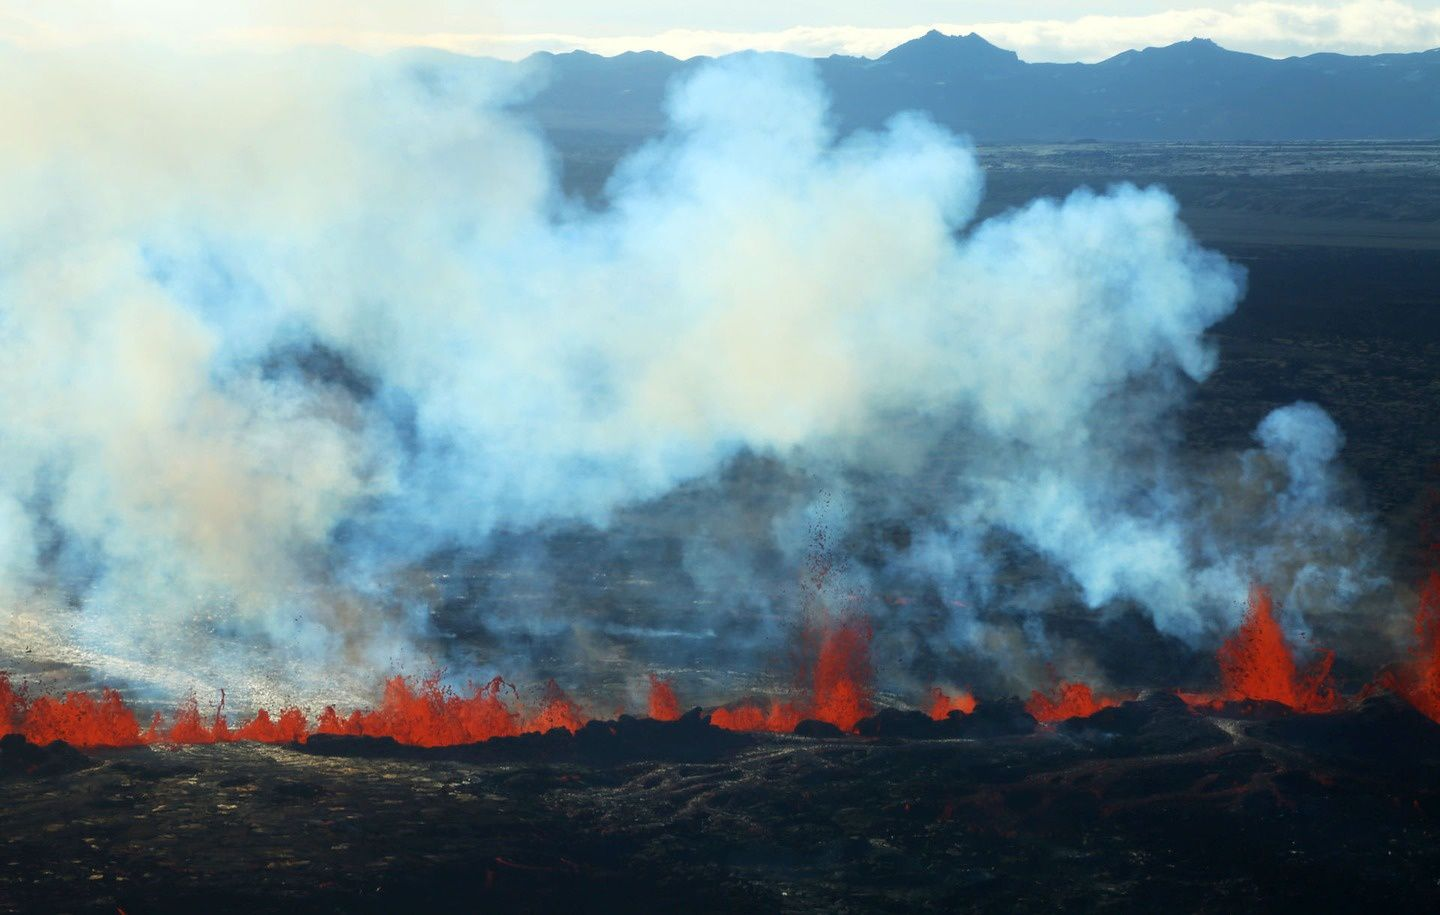 Holuhraun - 02.09.2014 - volcanic outgassing on the active crack - photo RUV